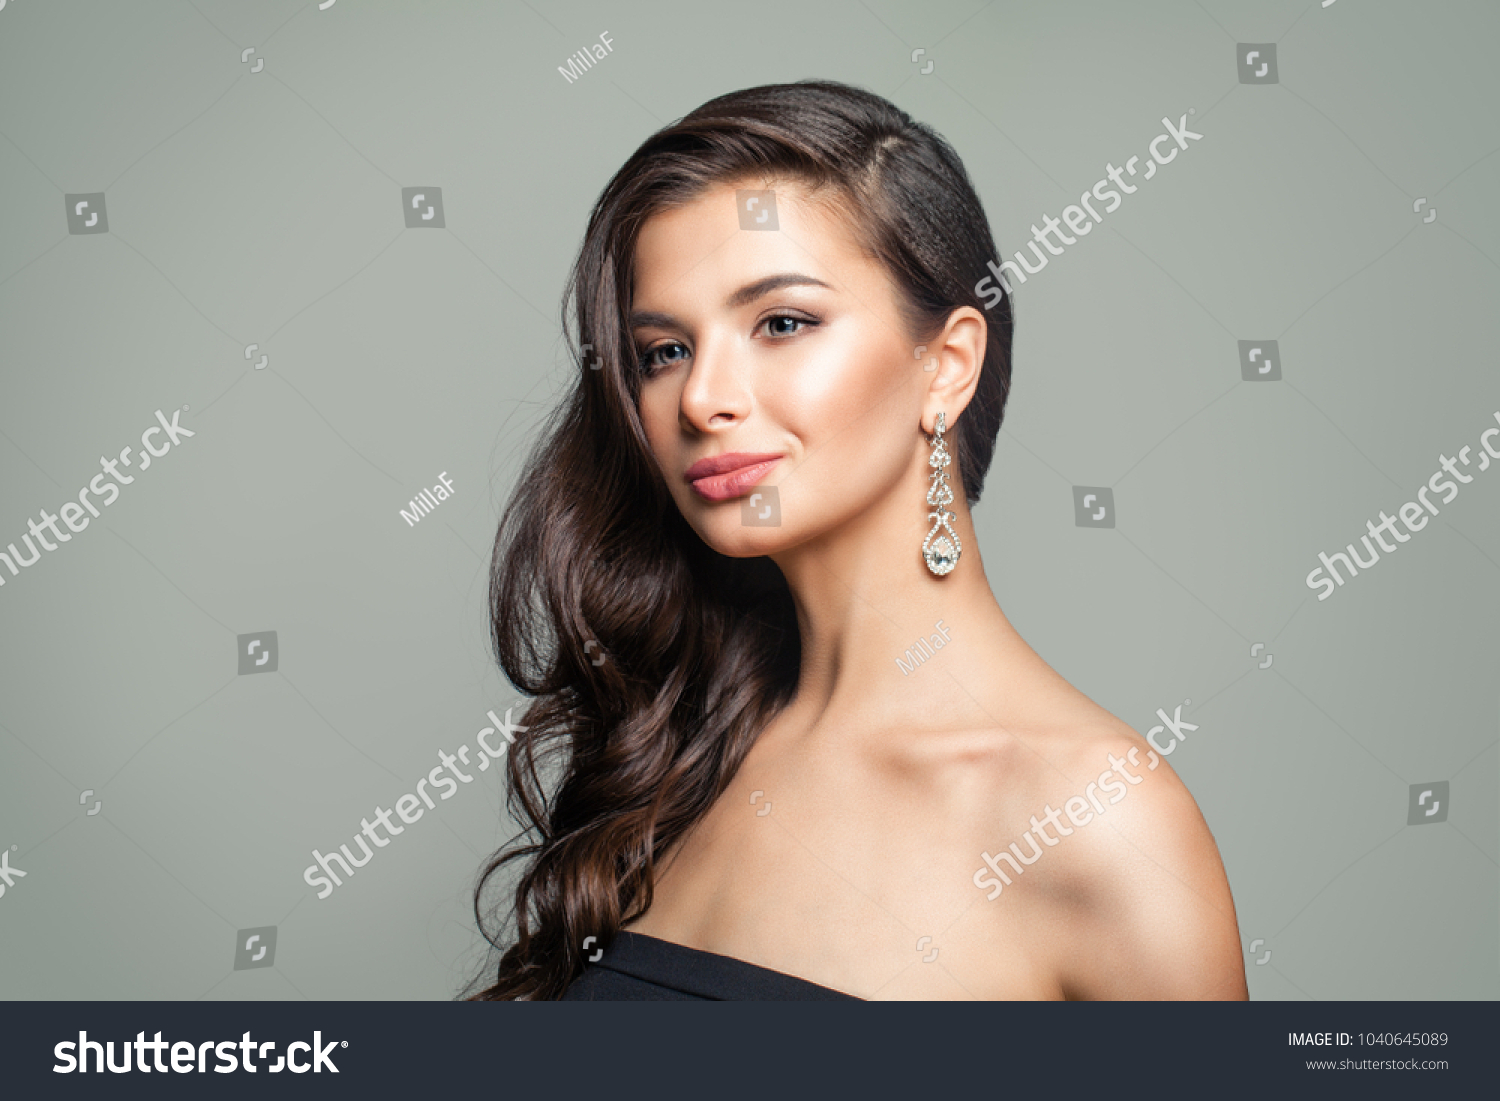 portrait of gorgeous alamy stock earrings photo woman with erwreb